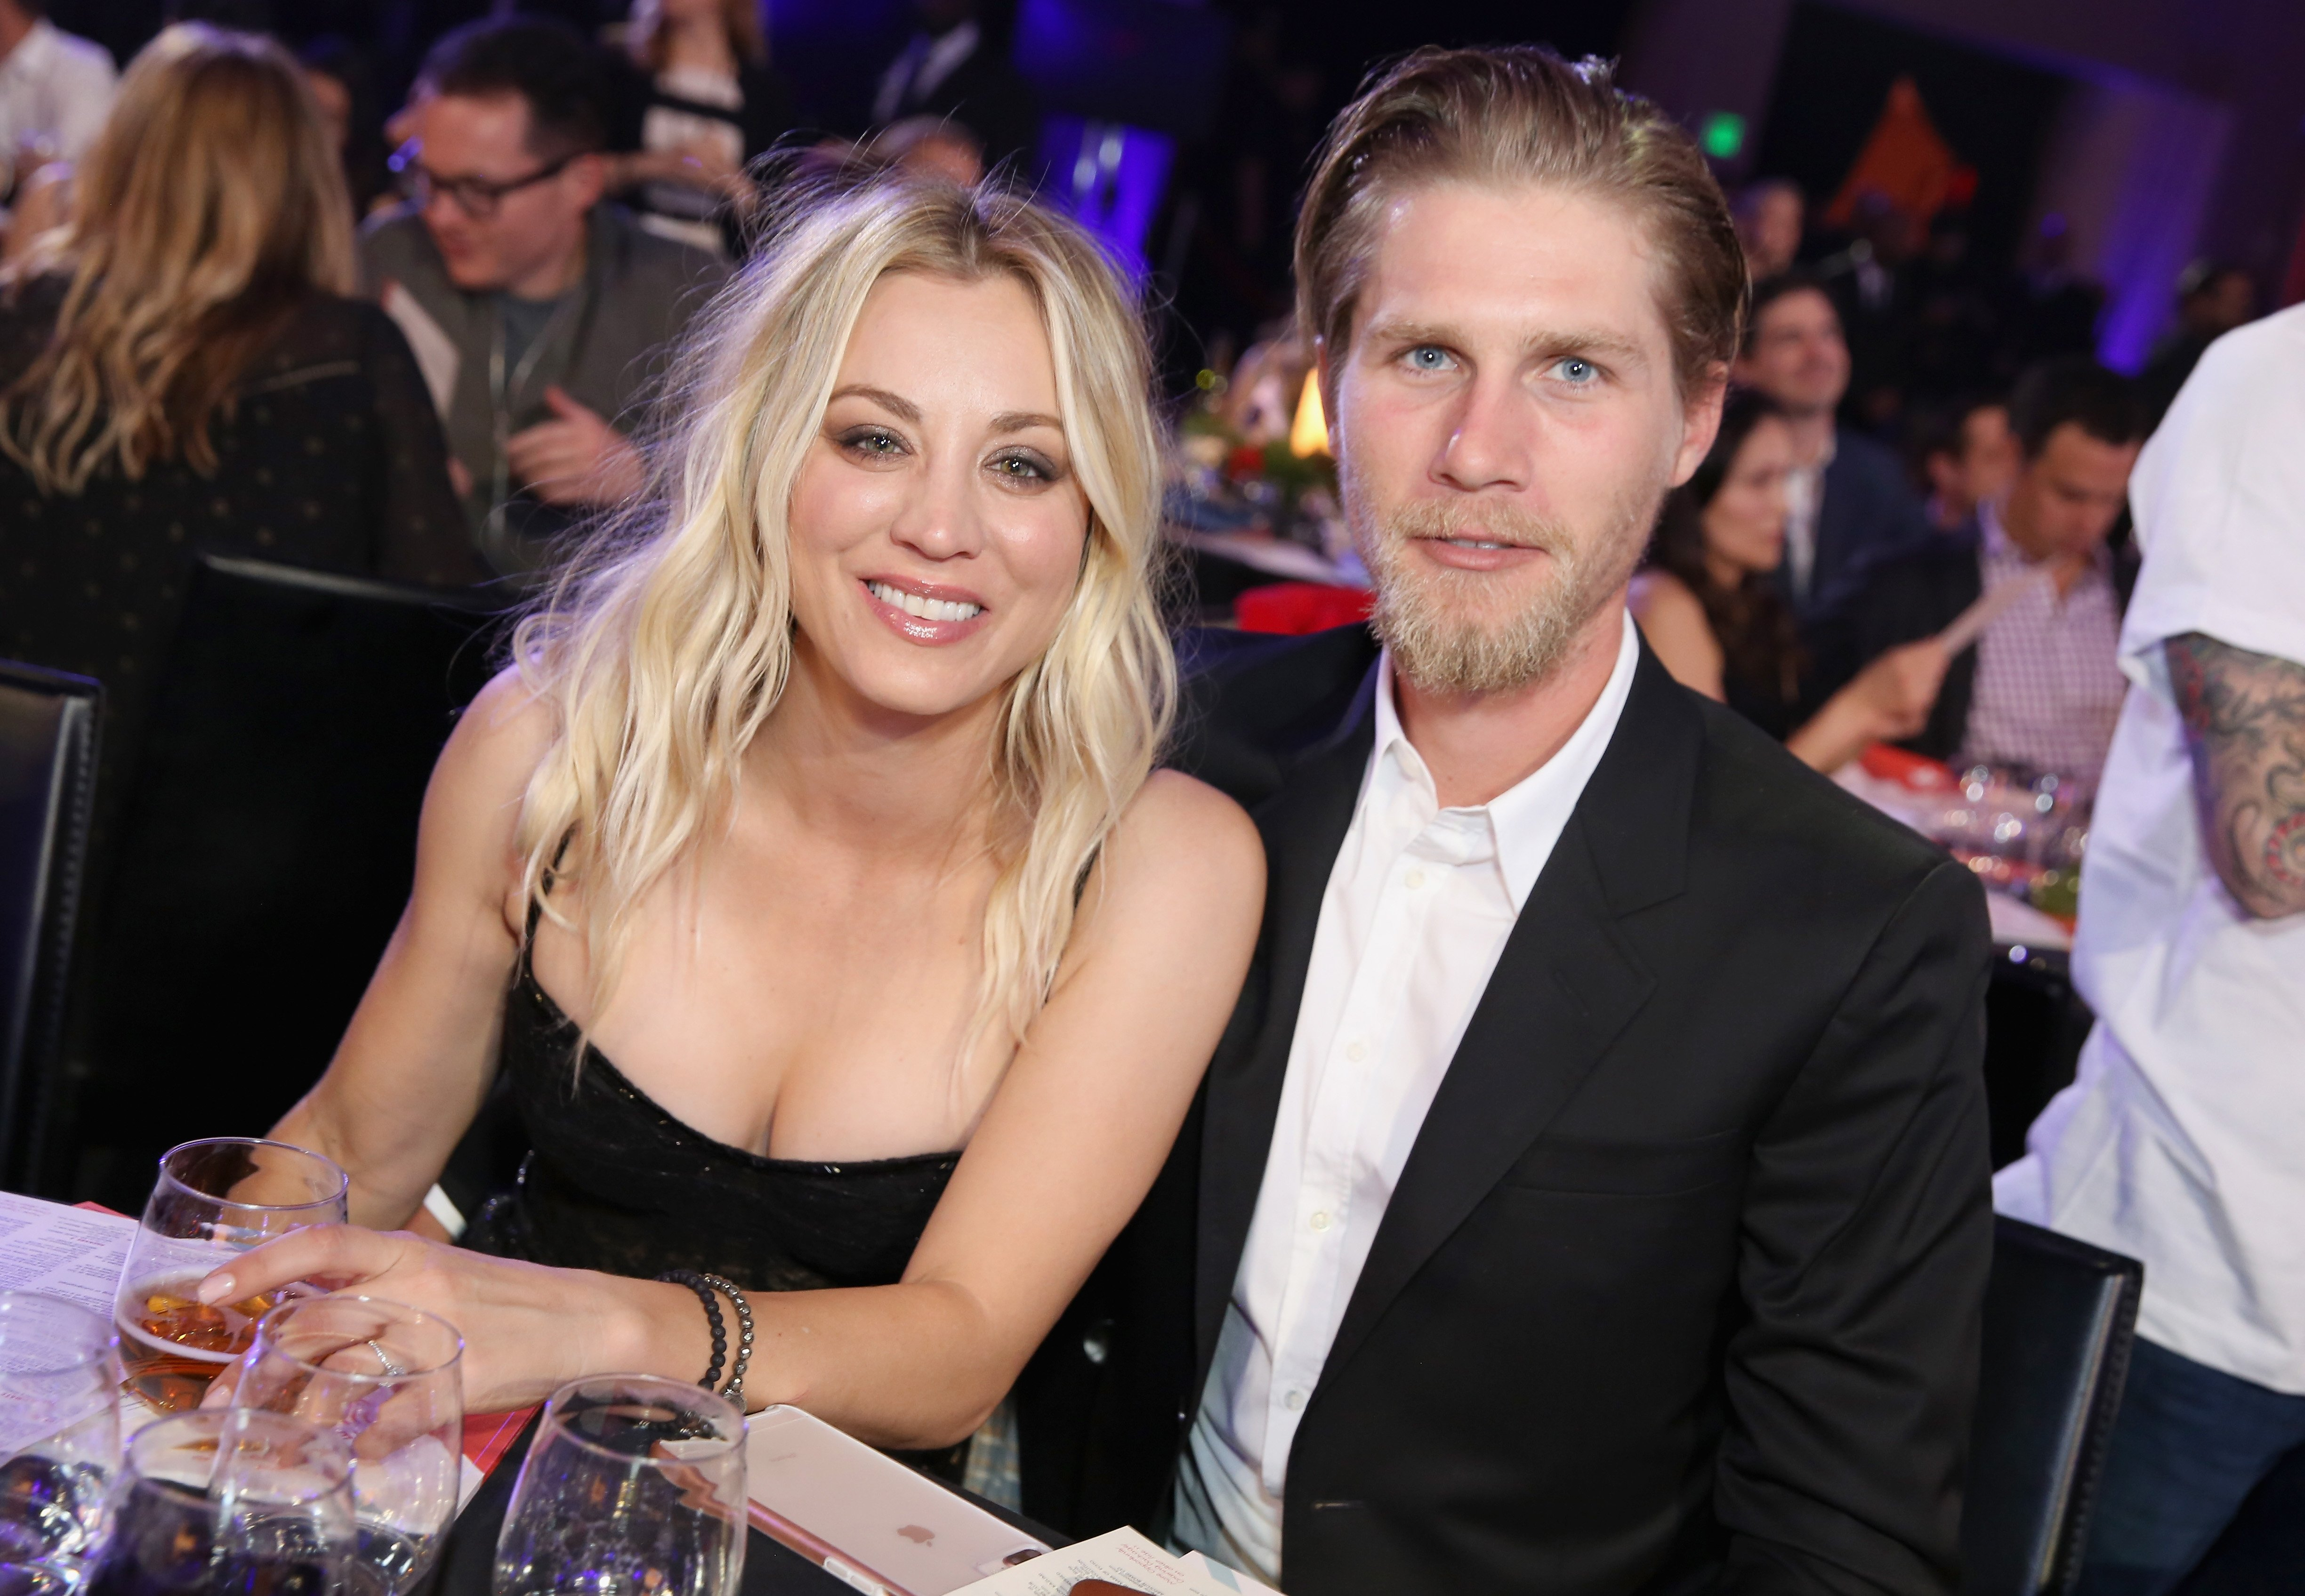 Kaley Cuoco and Karl Cook at Seth Rogen's Hilarity For Charity at Hollywood Palladium in Los Angeles, California | Photo: Rachel Murray/Getty Images for Netflix